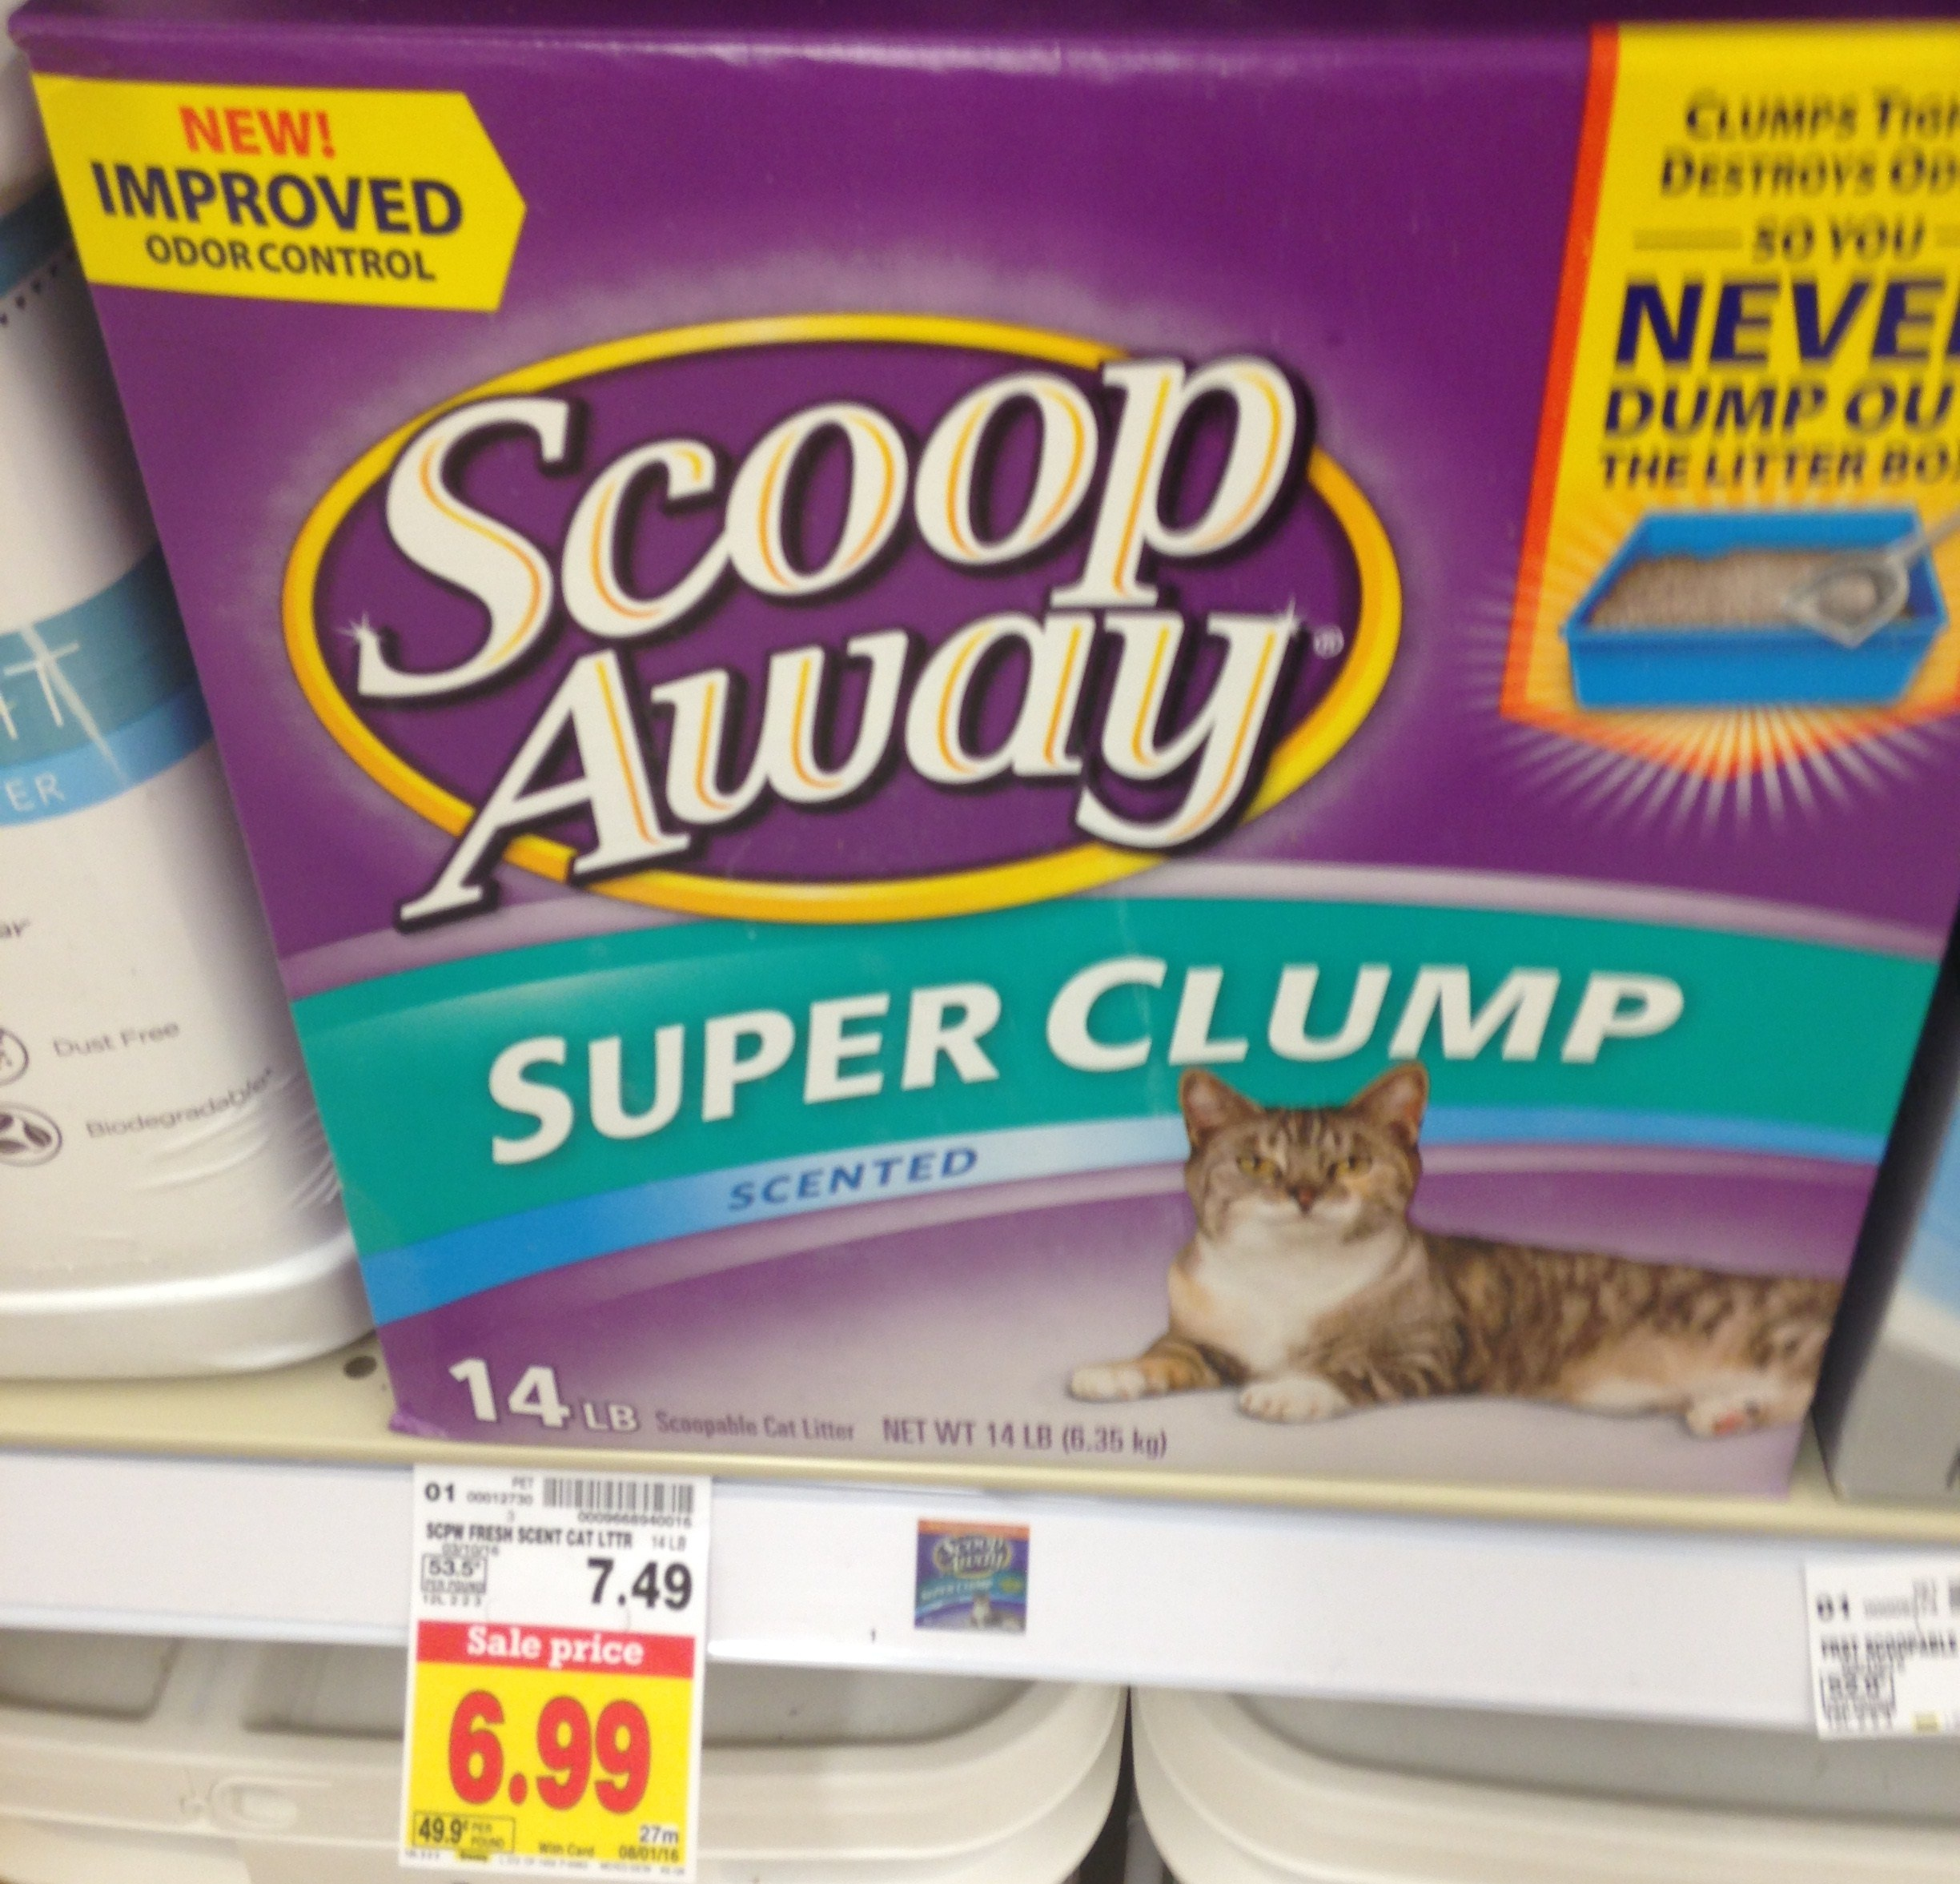 Scoop Away Clumping Cat Litter, Only $4.99 At King Soopers - Free Printable Scoop Away Coupons